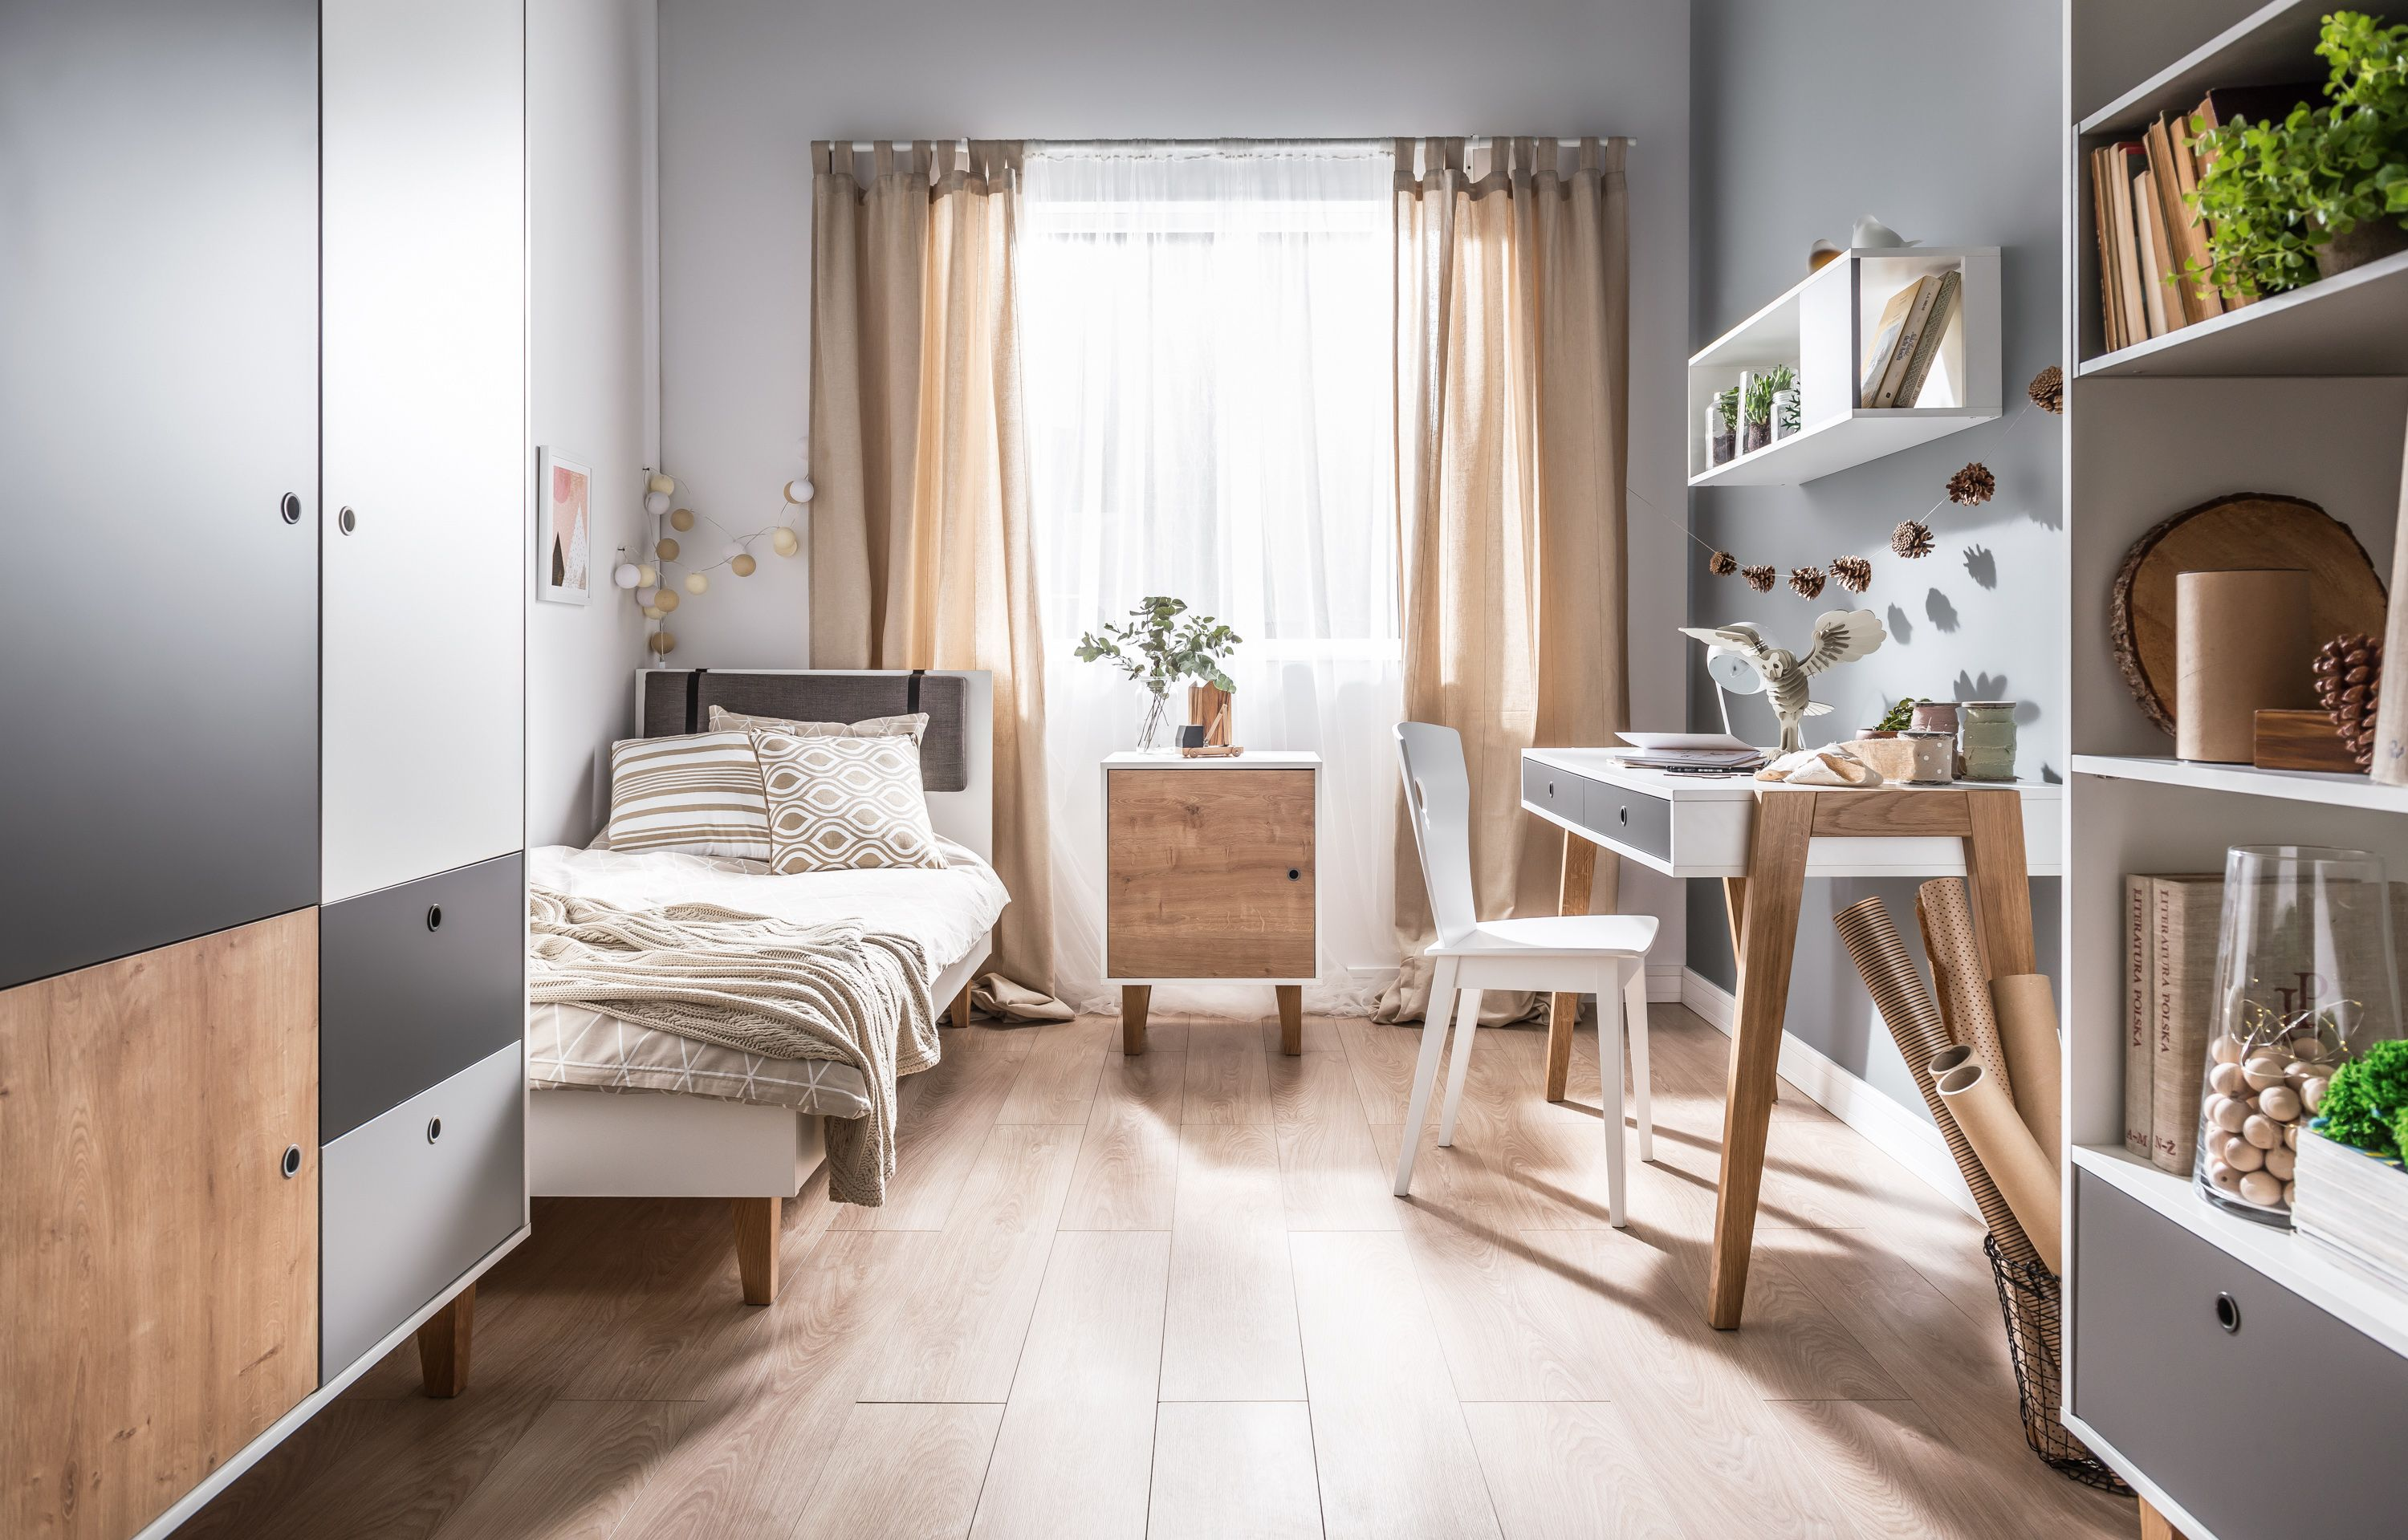 18 Small Bedroom Ideas To Fall In Love With - Small ... on Bedroom Ideas For Small Spaces  id=64917